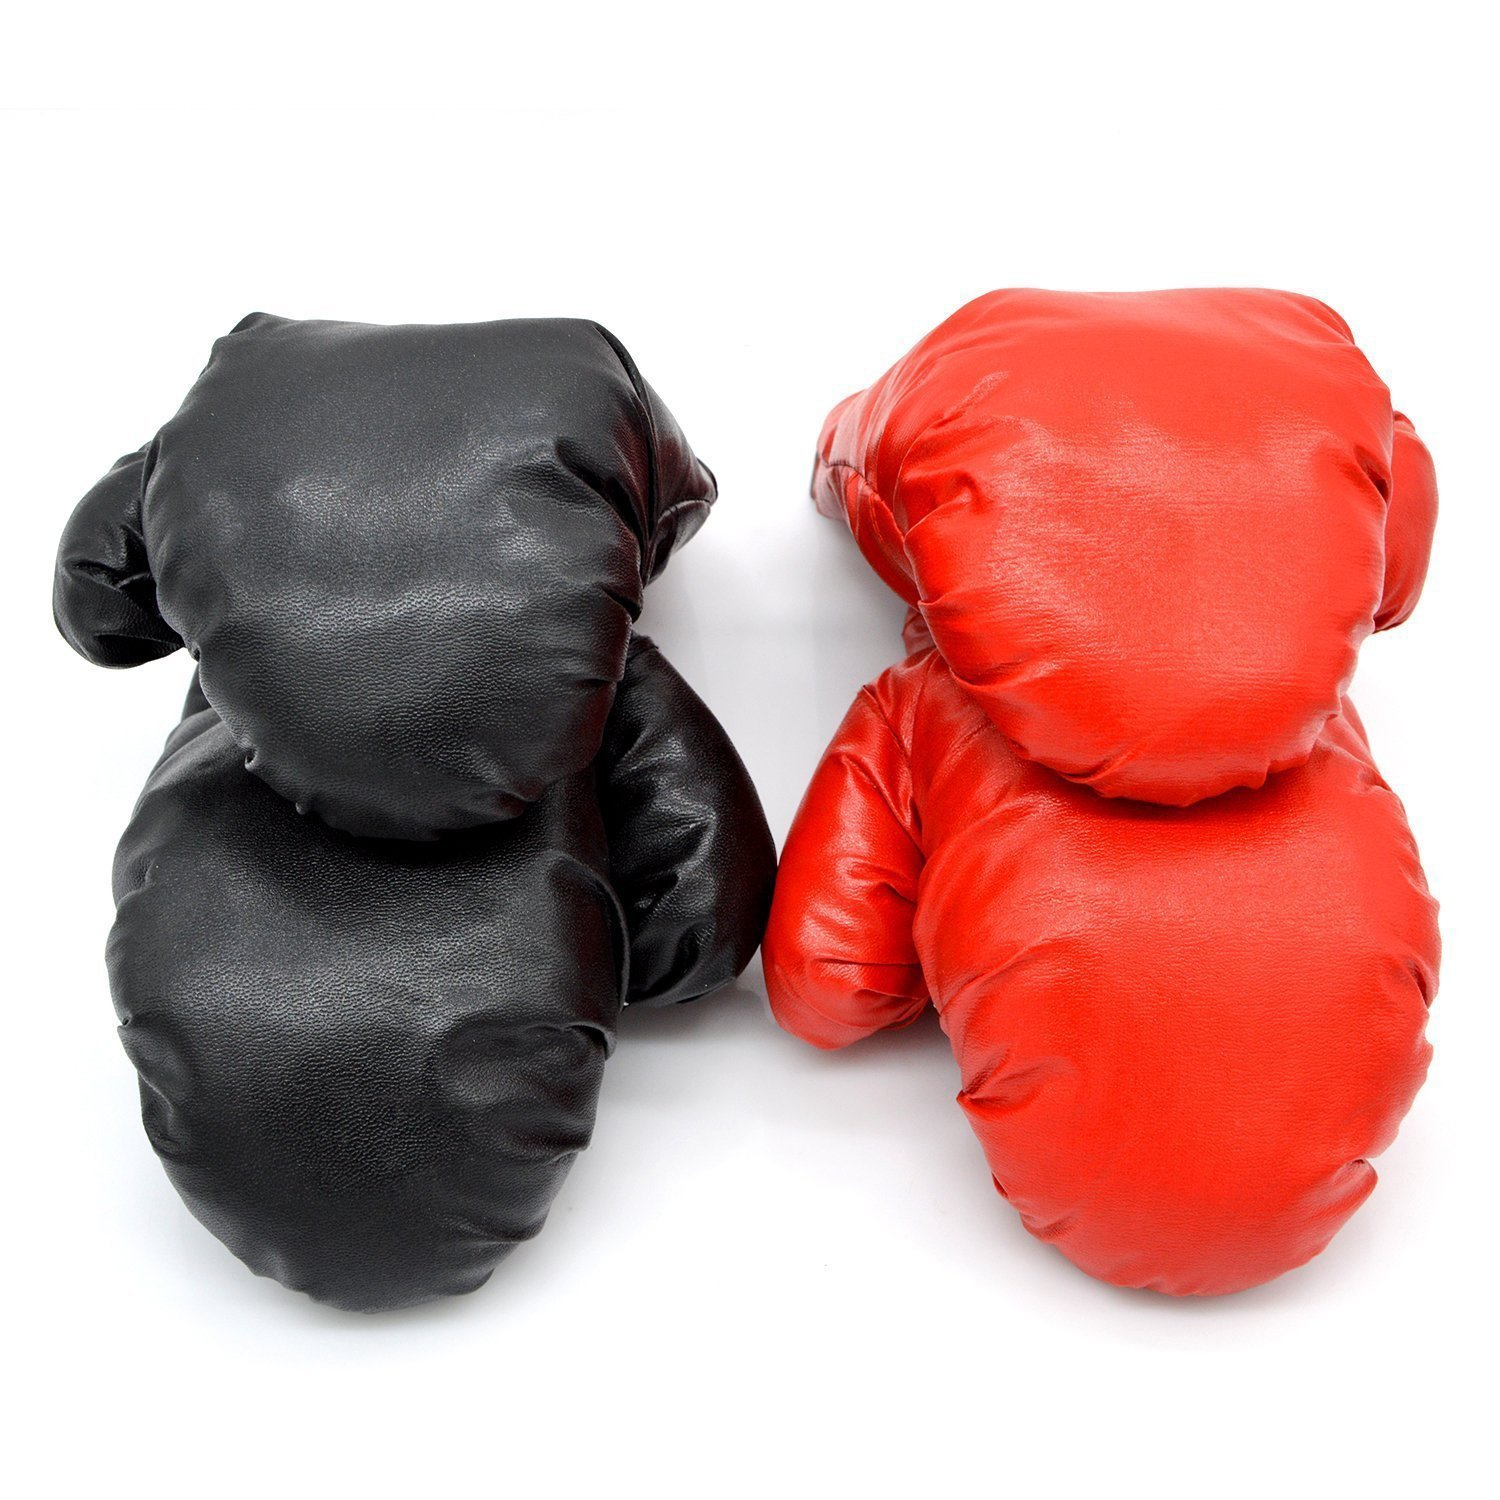 Micnaron 2 Pair Adult Boxing Gloves, Punching Gloves, Professional Shockproof Leather Sparring,Training Glove Set Punching Bag Mitts for Men/Women(Black+Red(2 Pair))